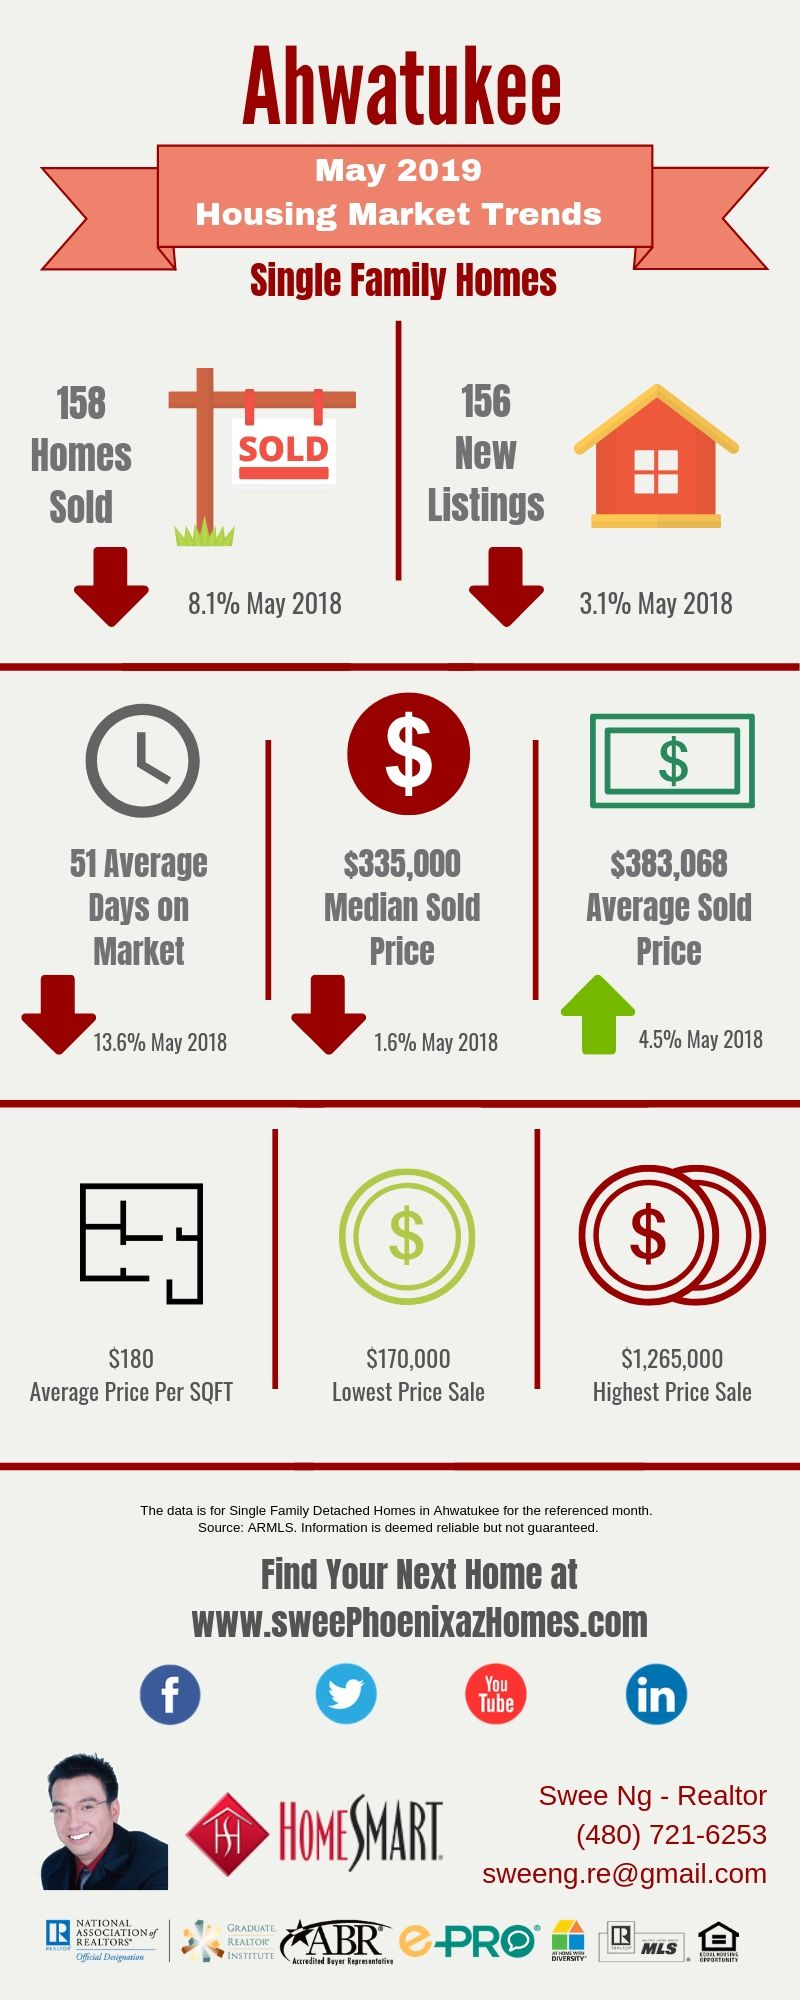 May 2019 Ahwatukee Housing Market Update, House Value, Real Estate and Statistic by Swee Ng